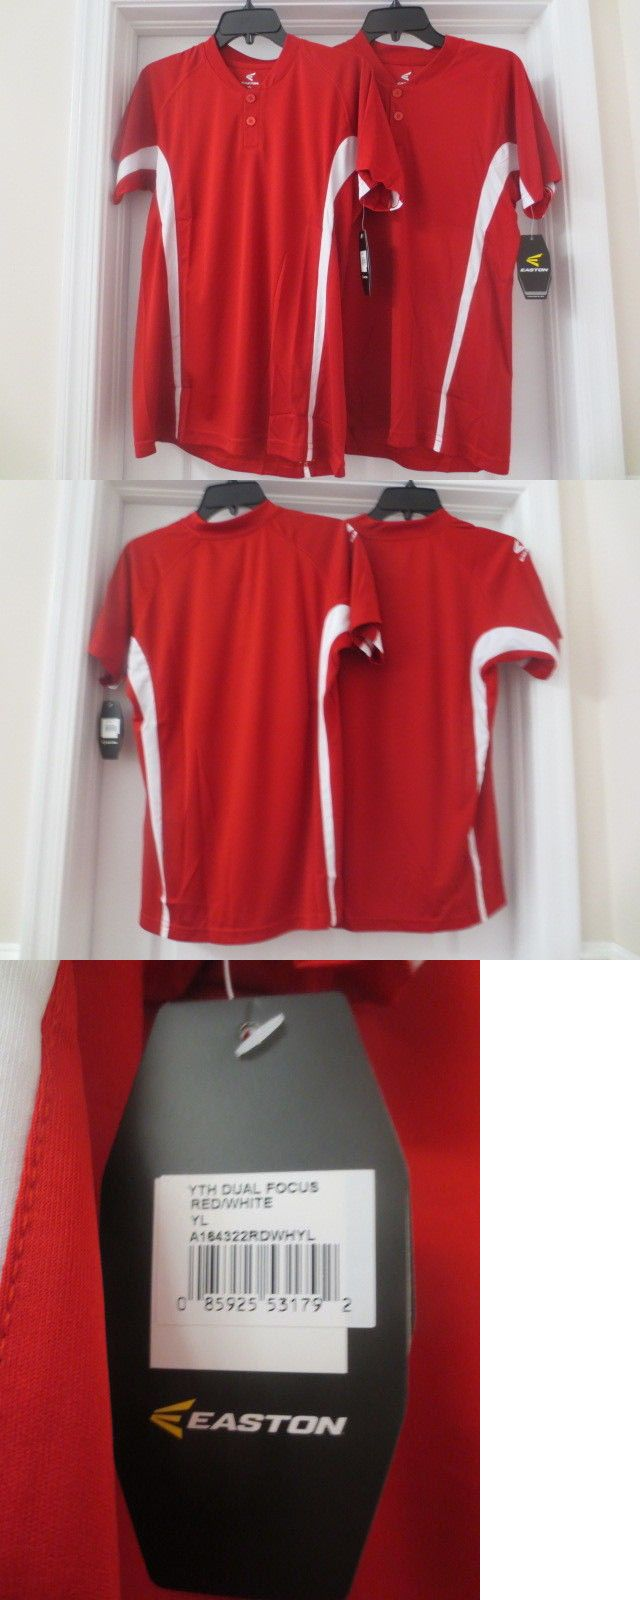 Baseball Shirts and Jerseys 181348  Lot Of 2 Easton Youth Dual Focus  Baseball Jersey Red Large -  BUY IT NOW ONLY   16.99 on  eBay  baseball   shirts ... b2eea96fe